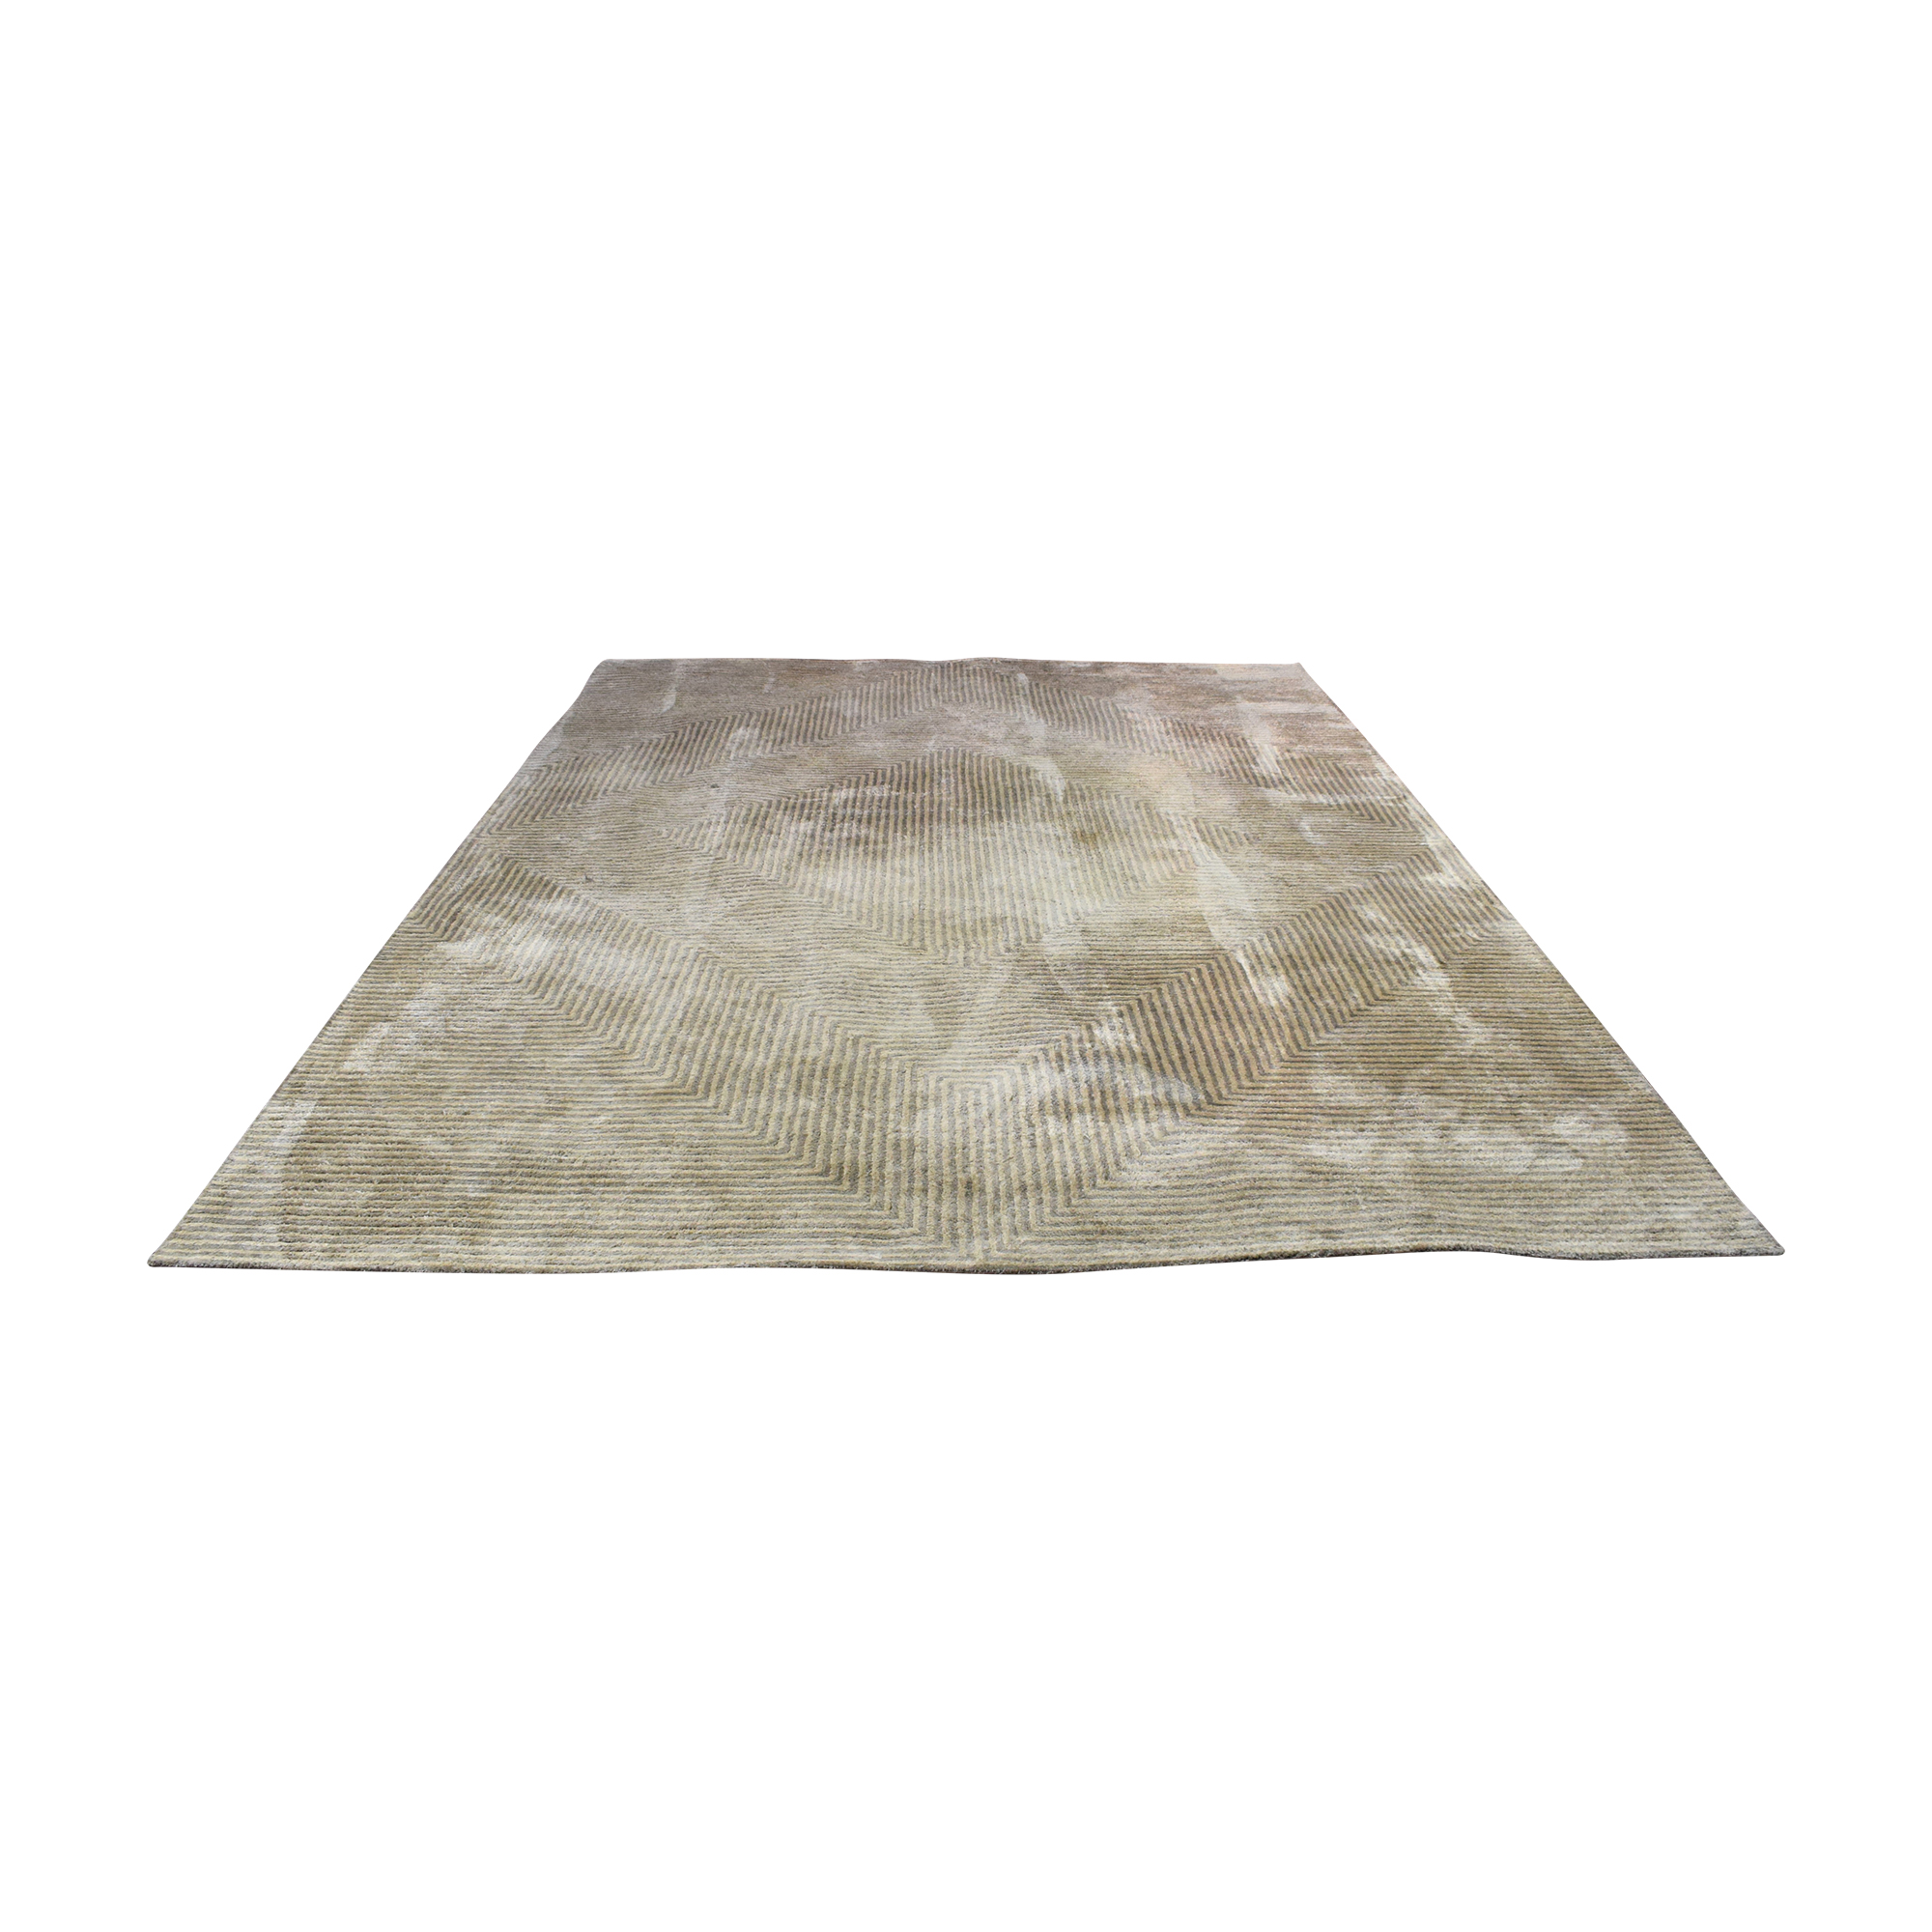 Surya Surya Quartz Area Rug tan